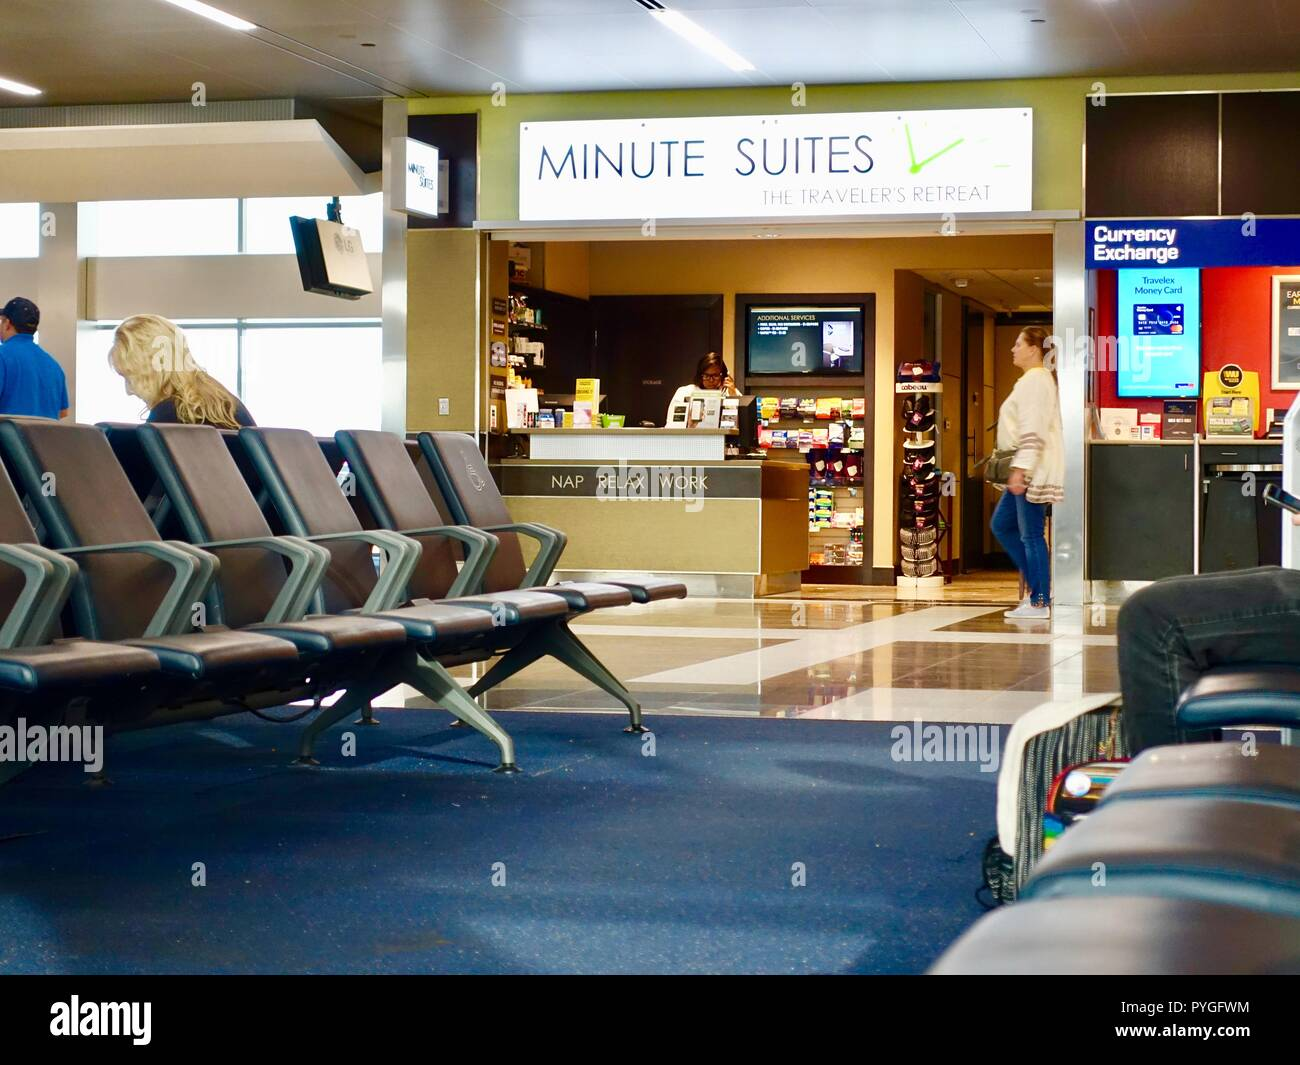 Minute Suites traveler's retreat, Atlanta Hartsfield International Airport, a place to nap, relax, and work in between flights, Atlanta, Georgia, USA - Stock Image